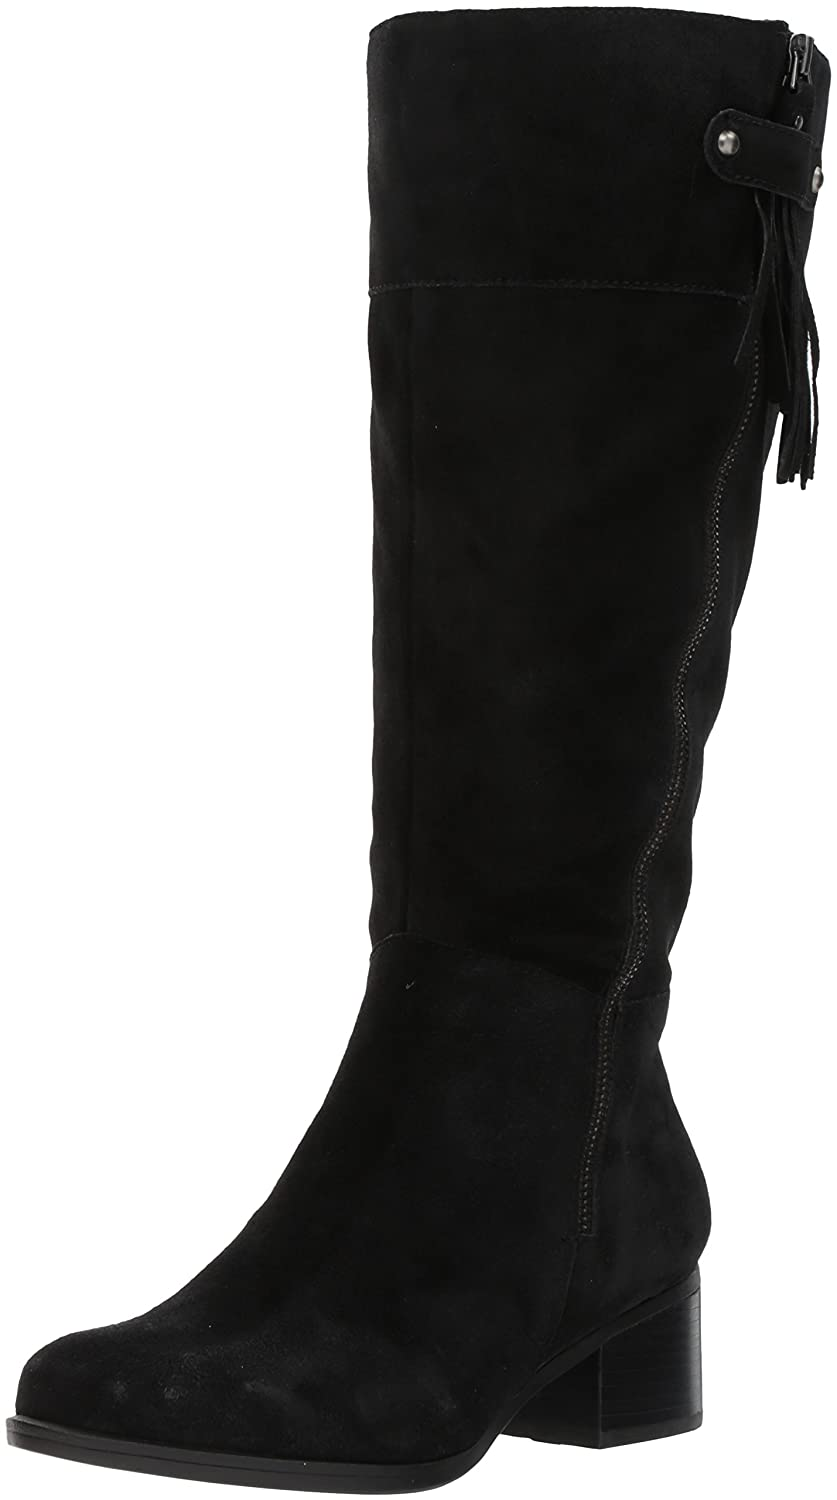 Naturalizer Women's Demi Wc Riding Boot B071ZDQ168 8 2W US|Black/Black